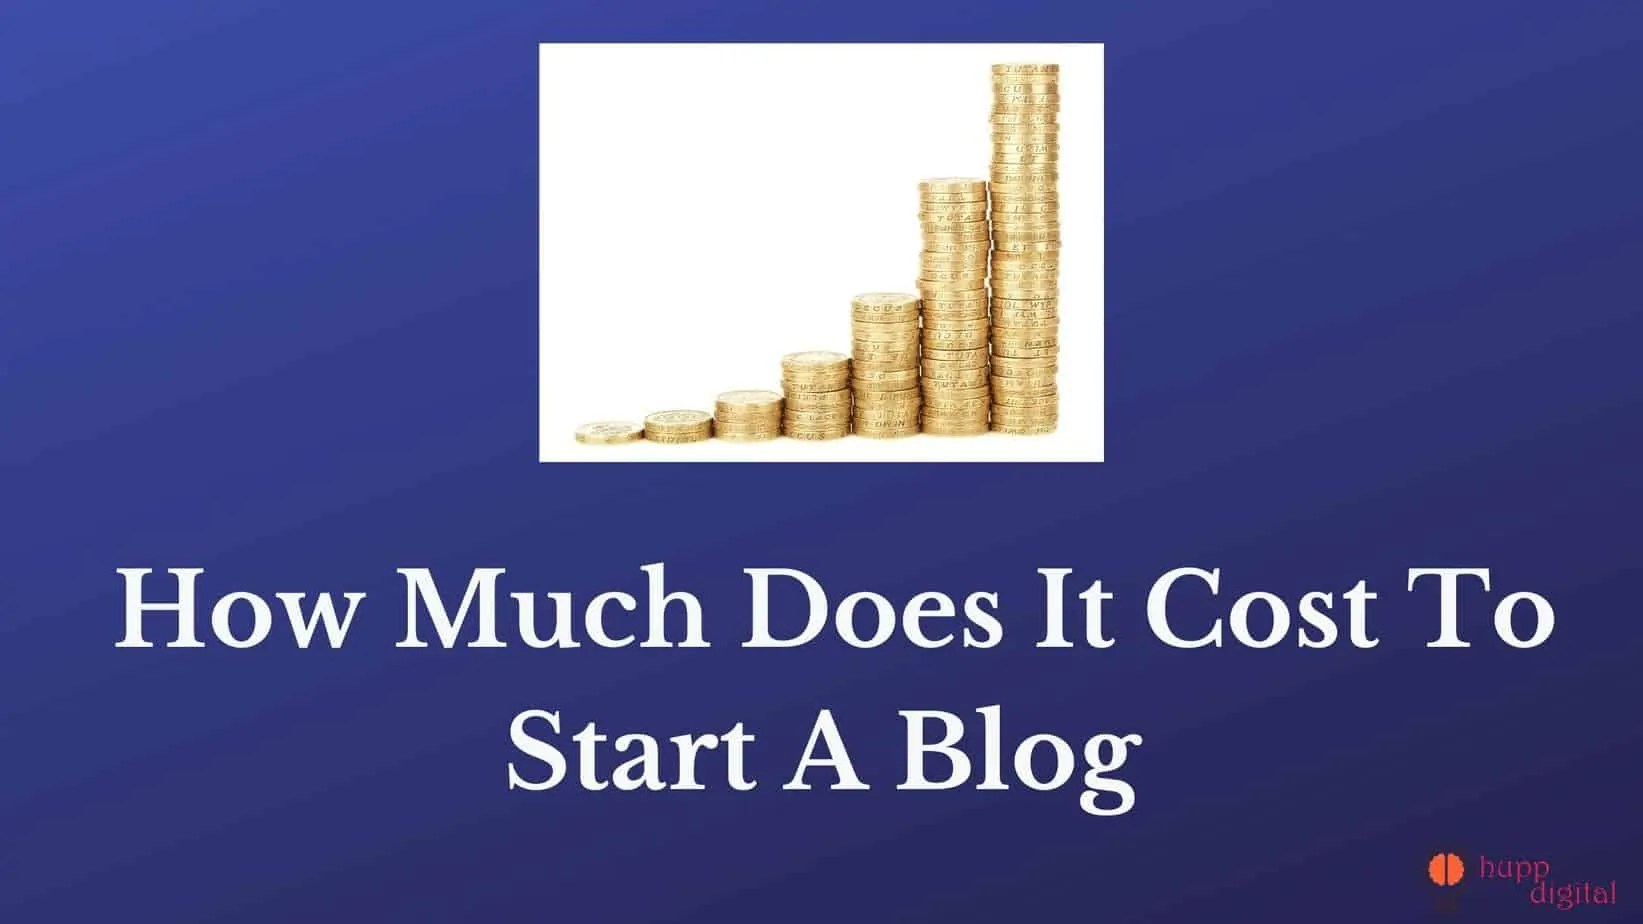 how much does it cost to start a blog.